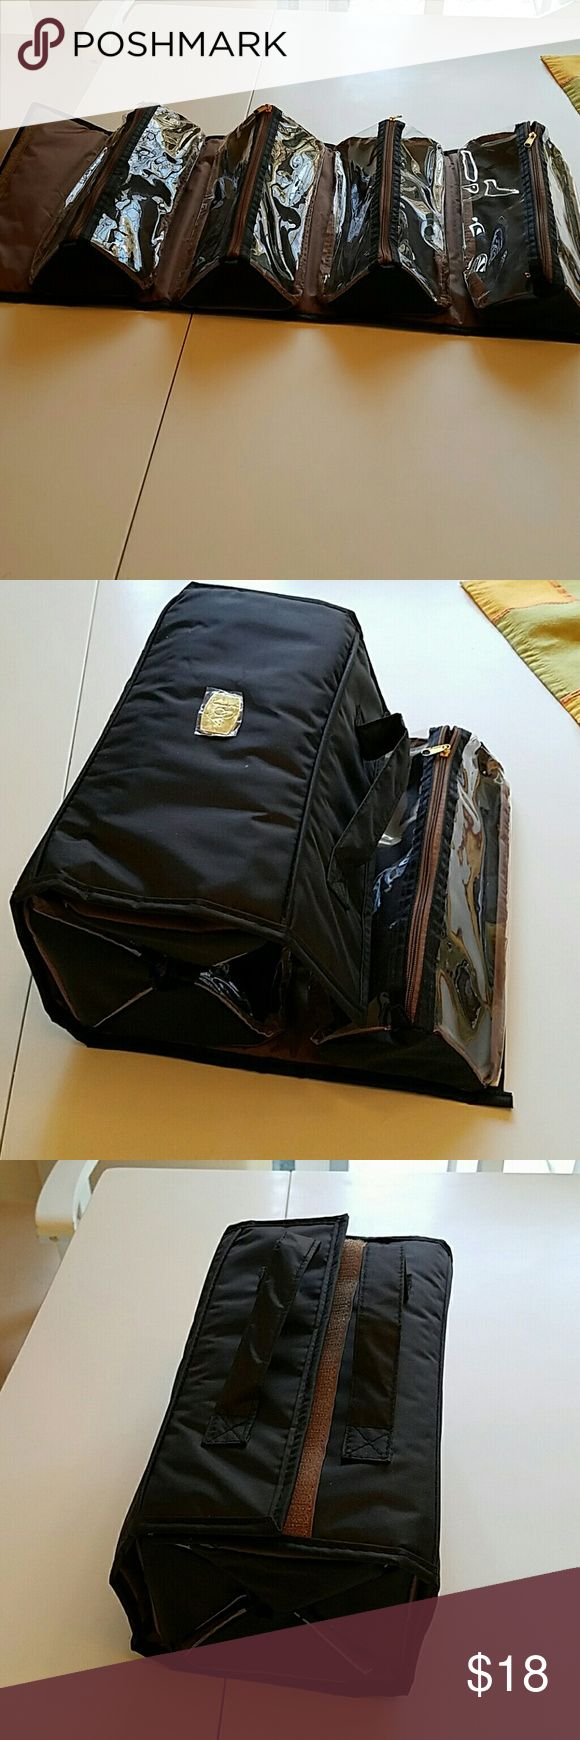 Travel bundle case Amazing@ it's perfect for traveling! 4 your makeup ,hair stuff, sm stuff, etc!! U have 4  zipped compartment and then it rolls into a square and velcros closed with handle on top. Never used it Nwot.. still has plastic film over opening.. it is a black like canvas material which you can easily wipe down,  perfect to put in your suitcase with everything in it and 4zip compartments! When it is totally open across it measures 22 by 11 as you see in picture one..got at bed…